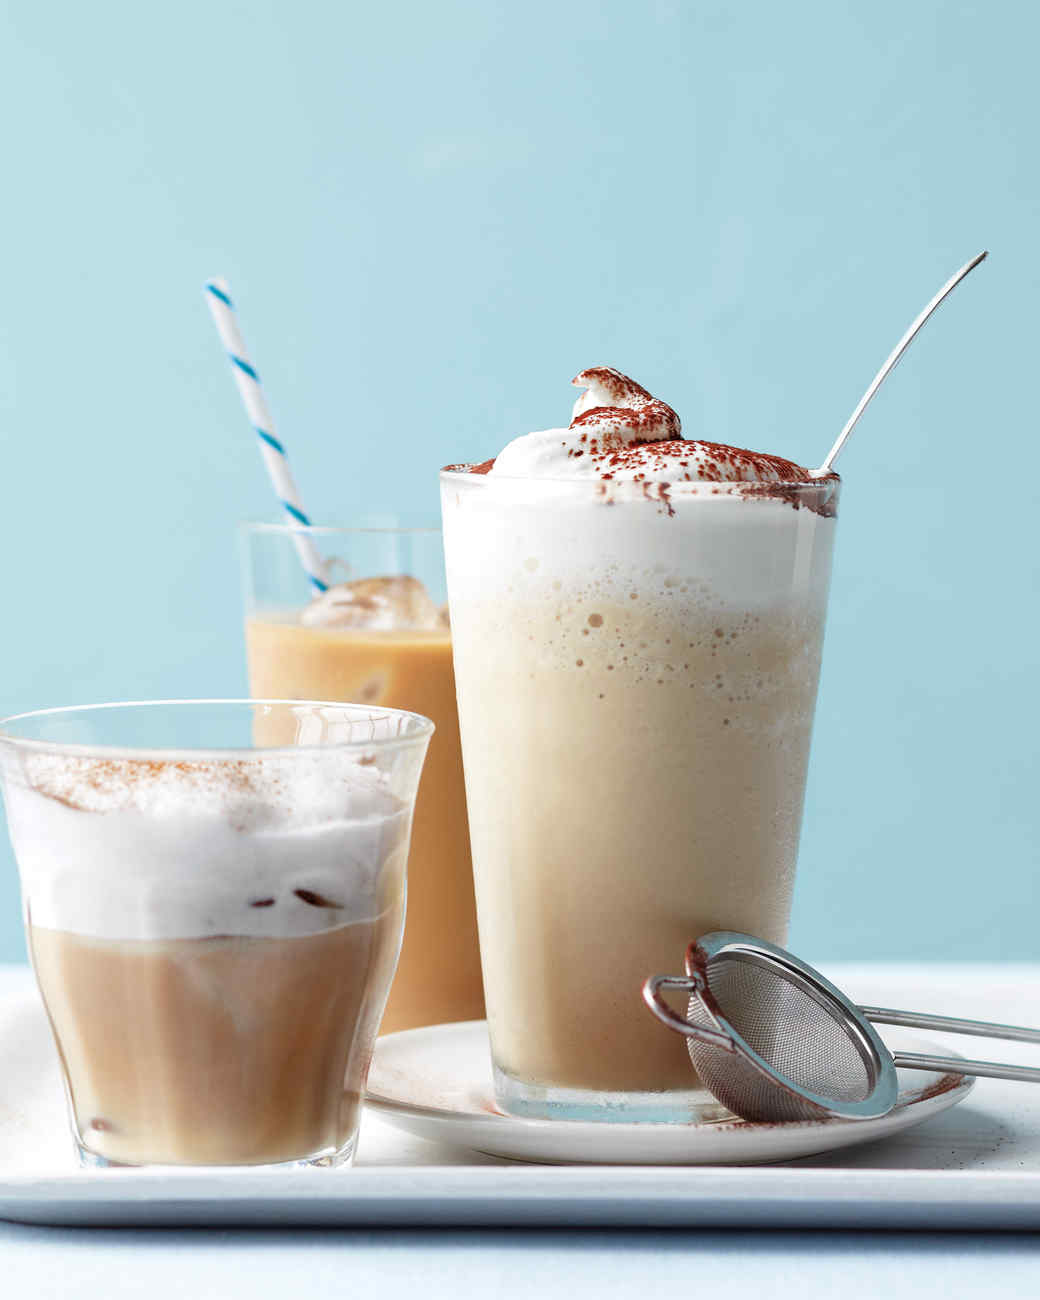 Iced coffee, iced cappucino, and coffee frappe